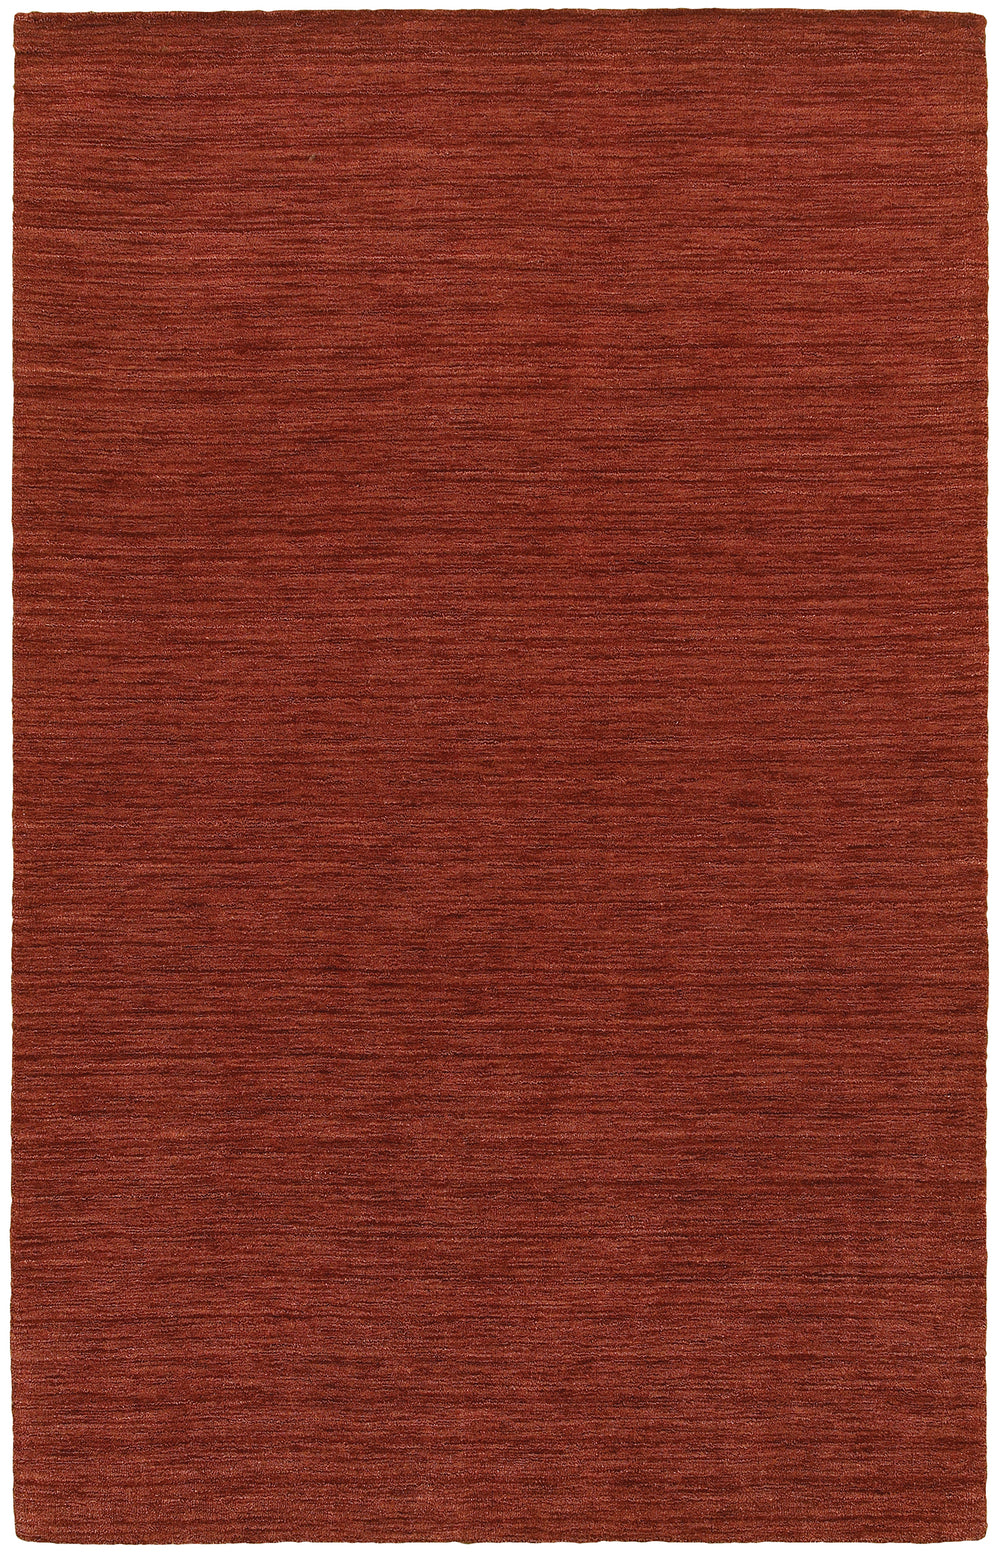 Oriental Weavers Aniston 27103 Area Rug